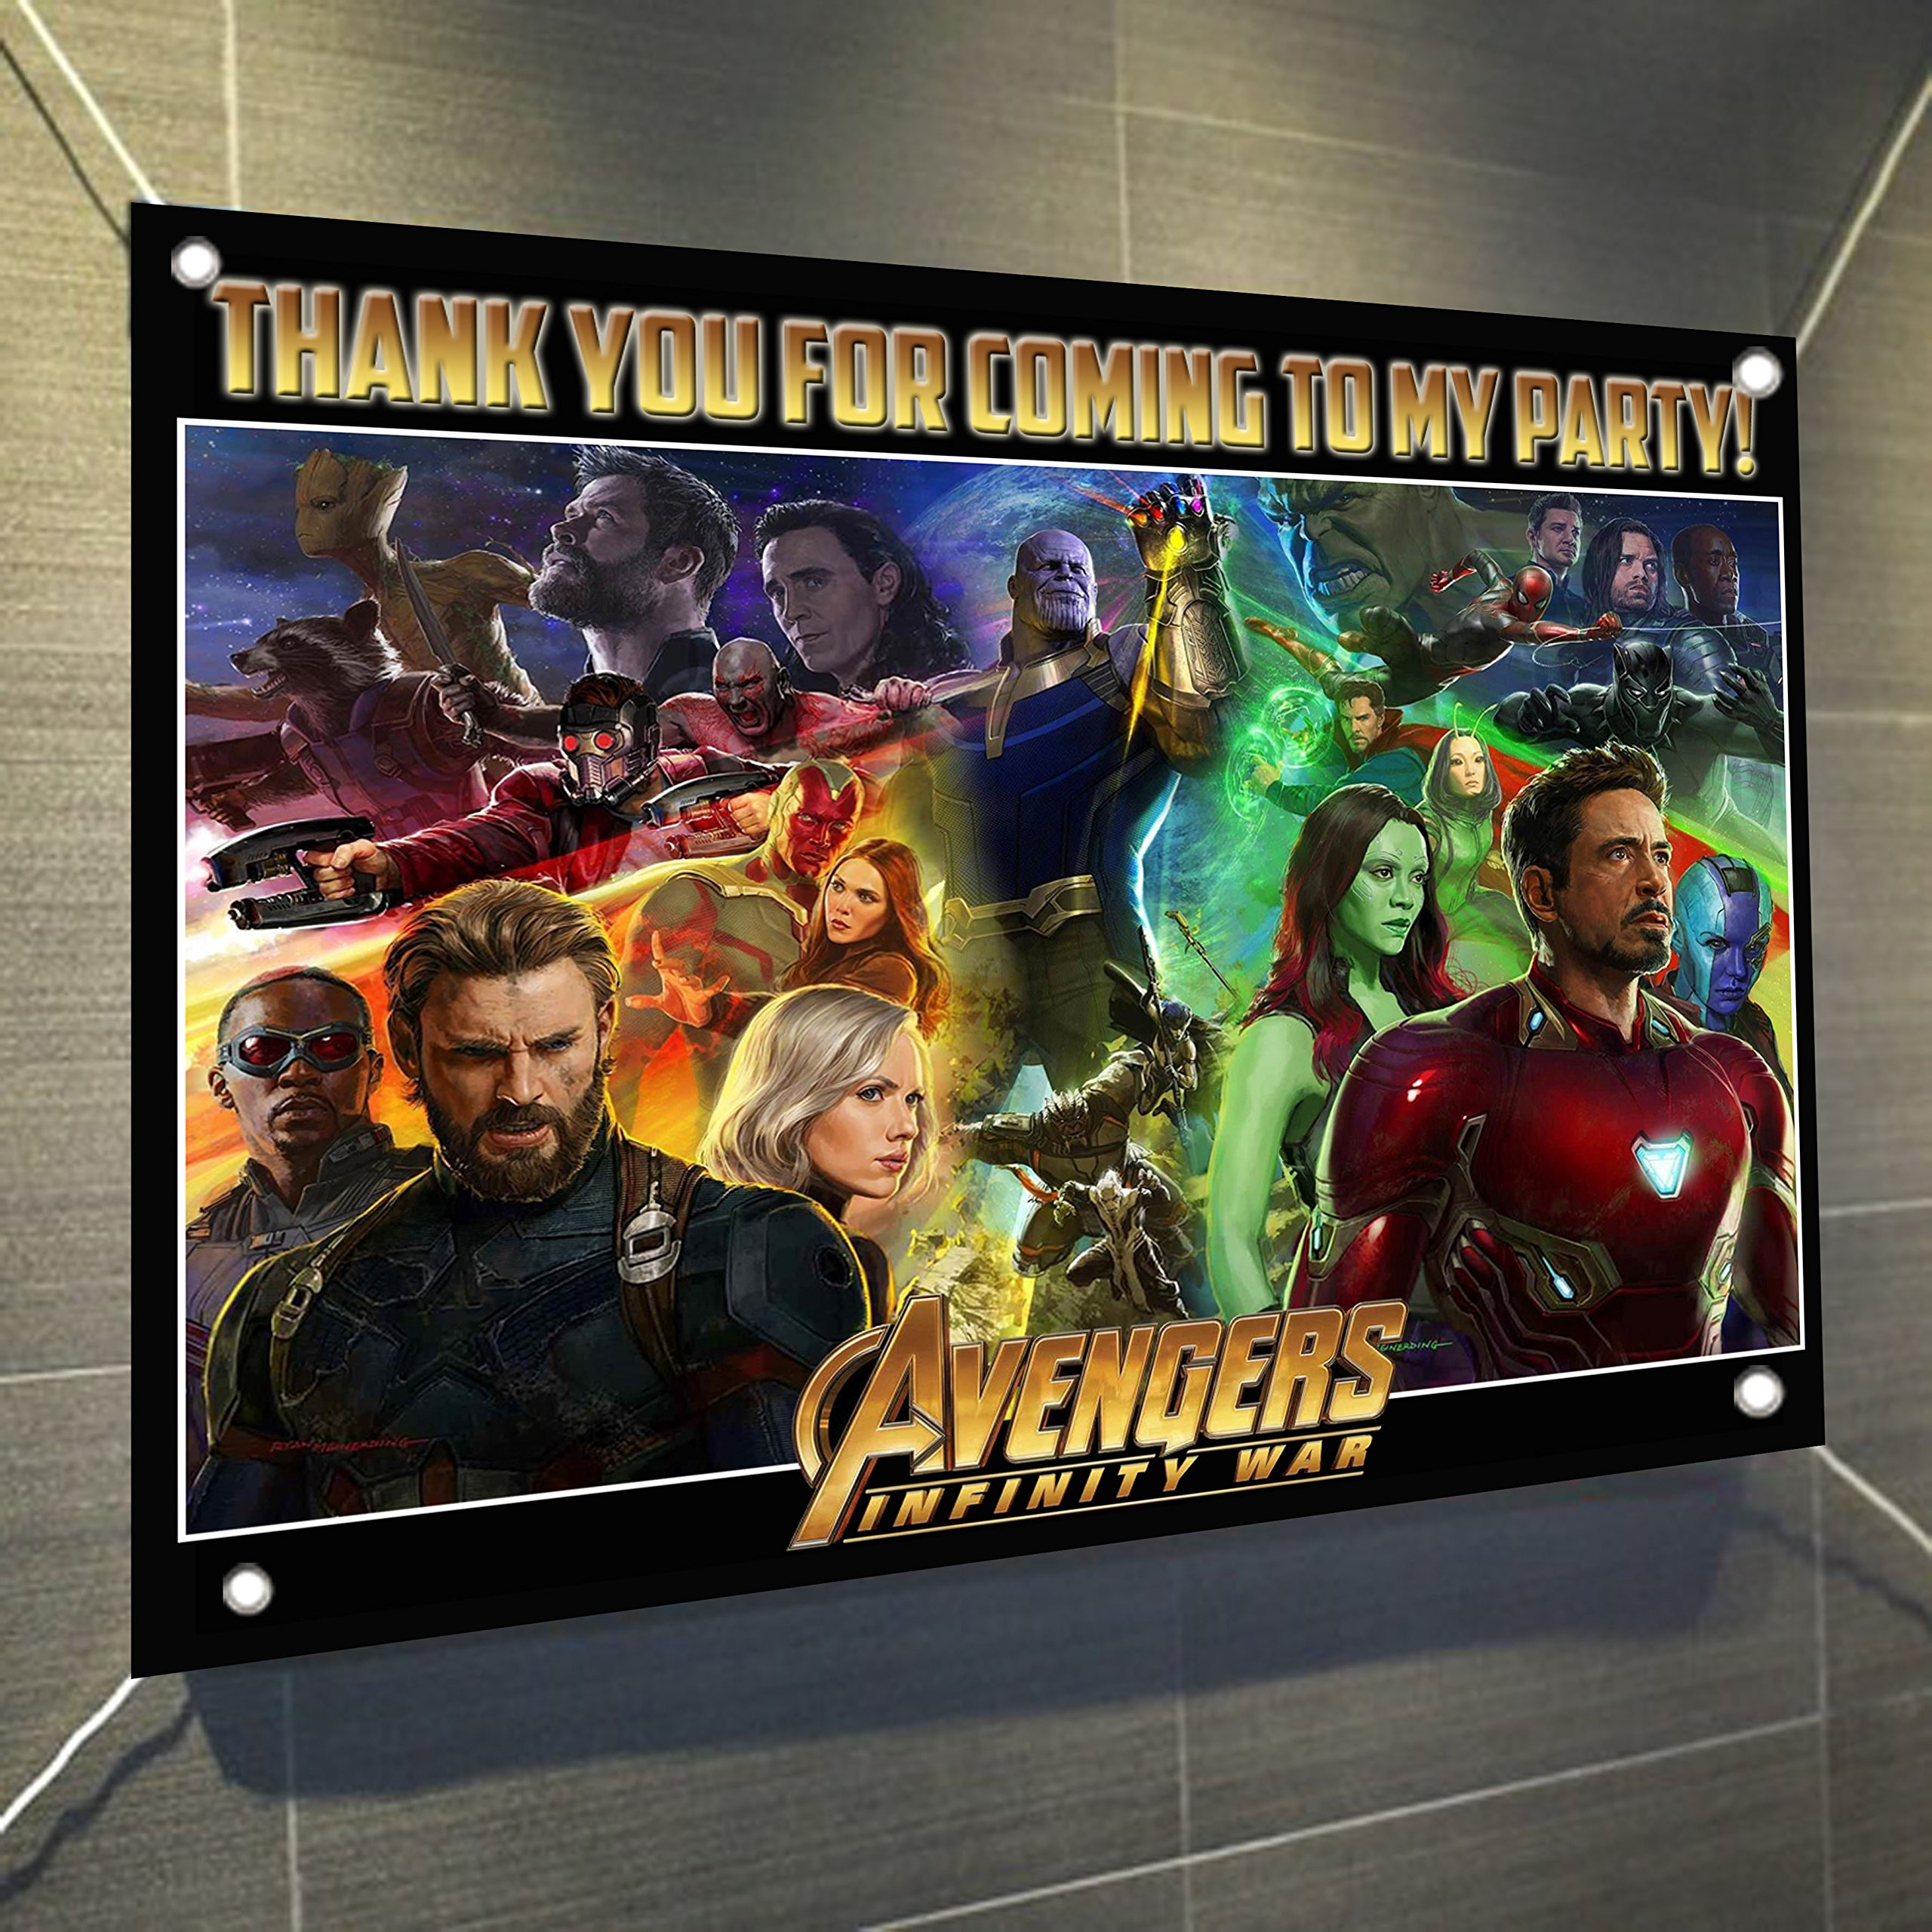 AVENGERS Infinity War Movie Banner Large Vinyl Indoor or Outdoor Banner Sign Poster Backdrop, party favor decoration, 30'' x 24'', 2.5' x 2'